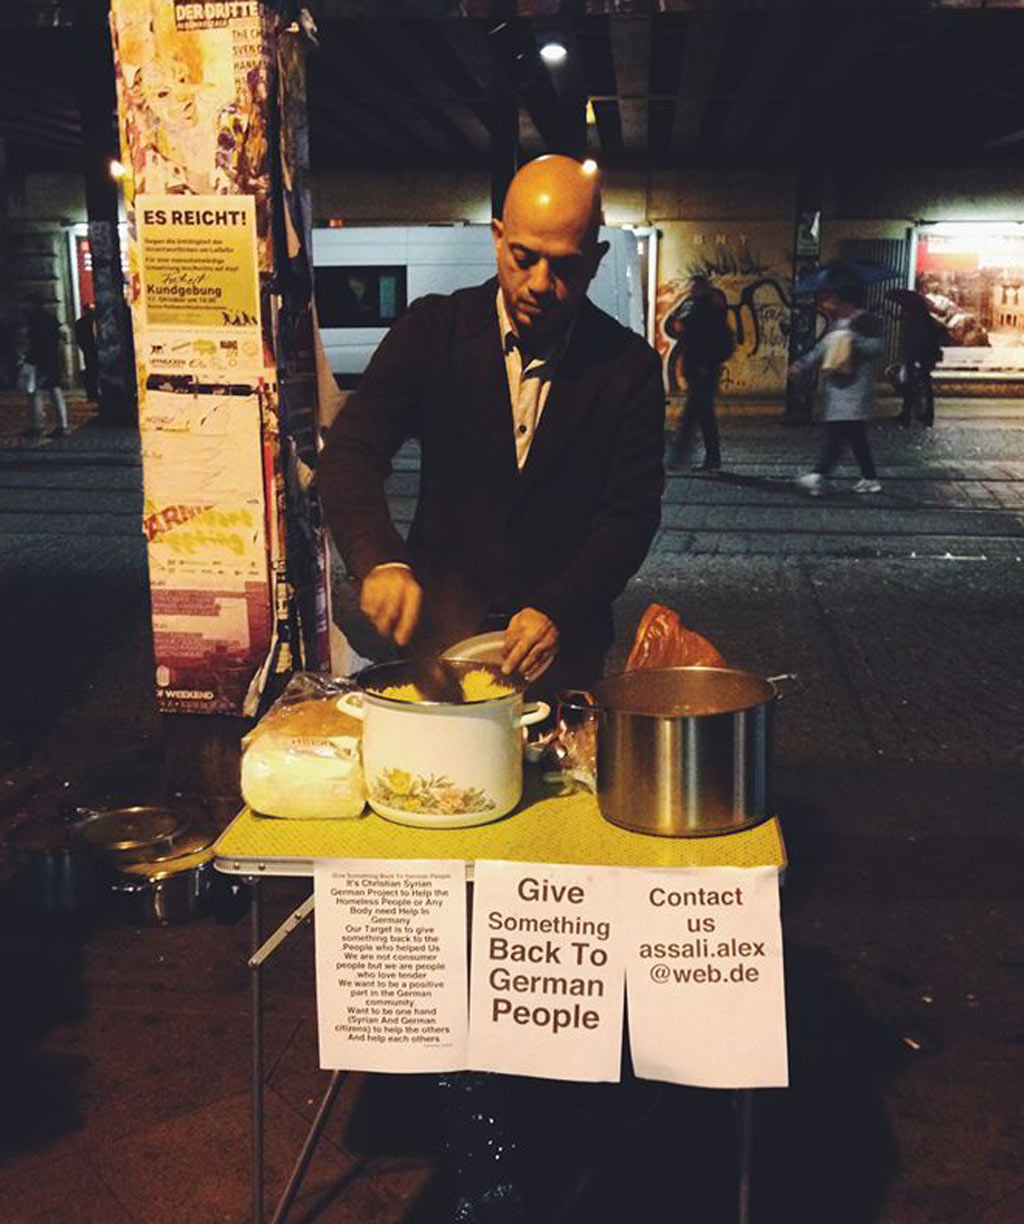 Viral News From Germany: Syrian Refugee Pictured Feeding Homeless Germans In Viral